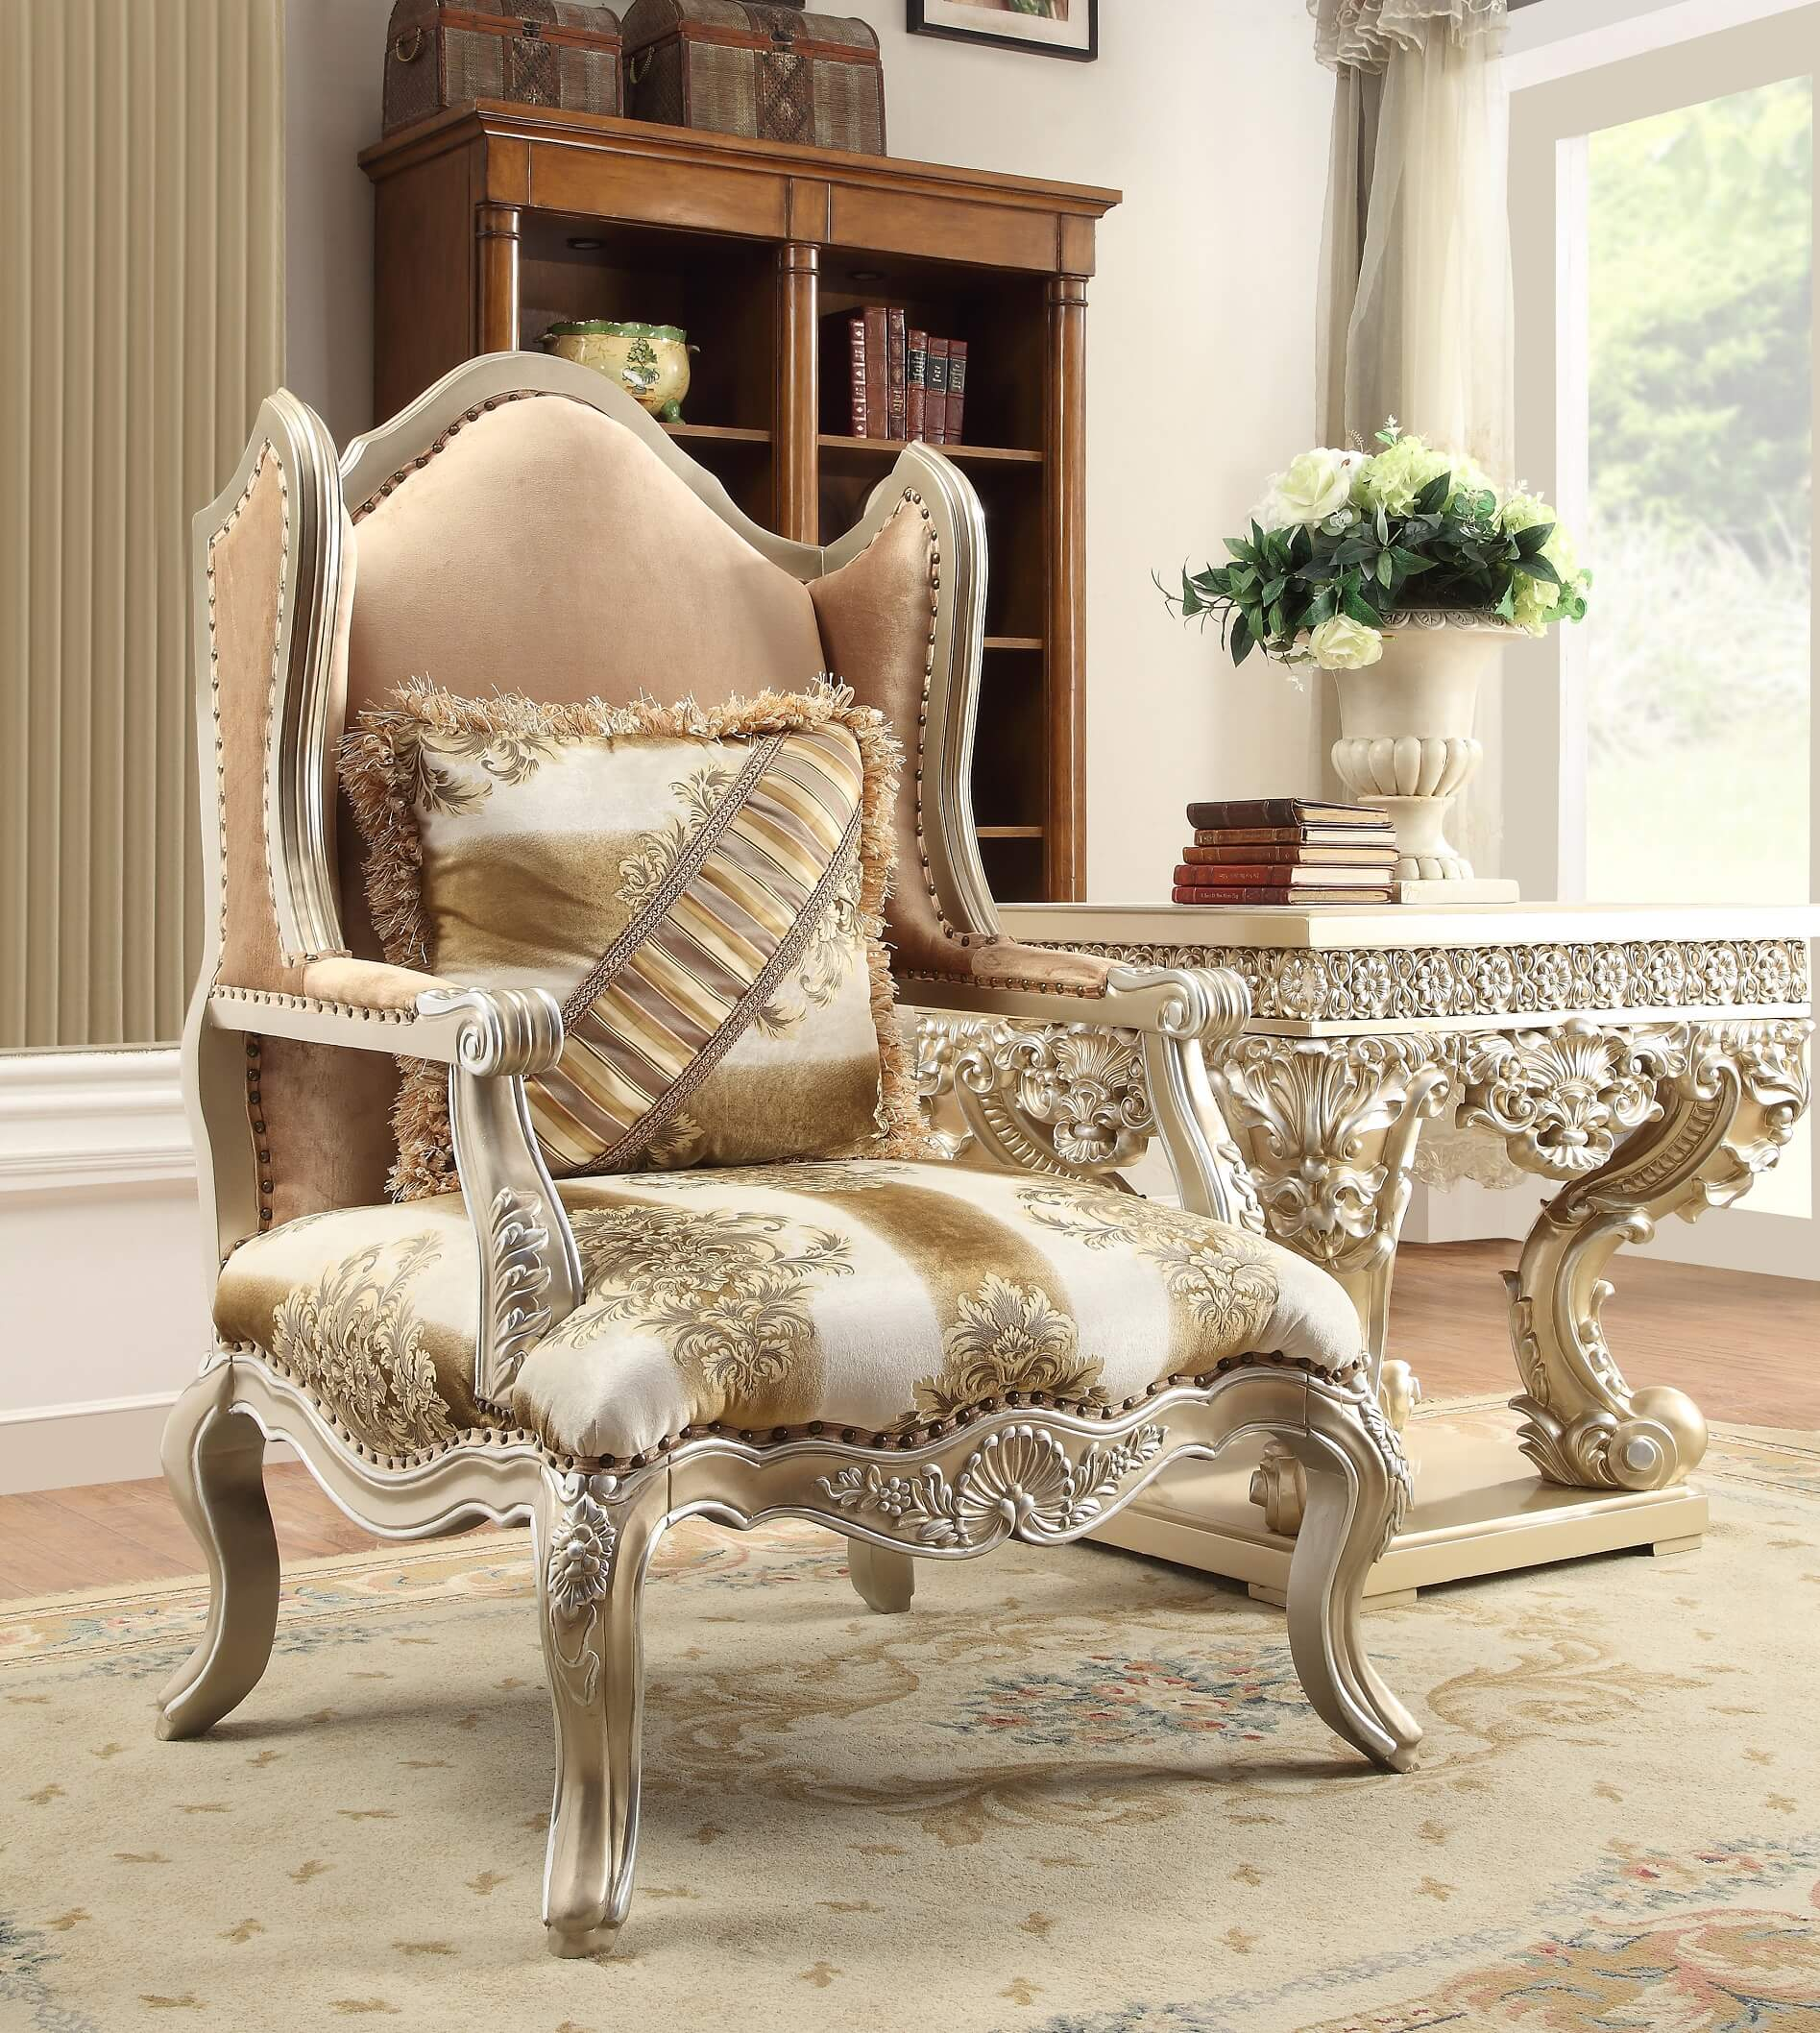 Homey Design Hd 820 Royal Palace Accent Chair Usa